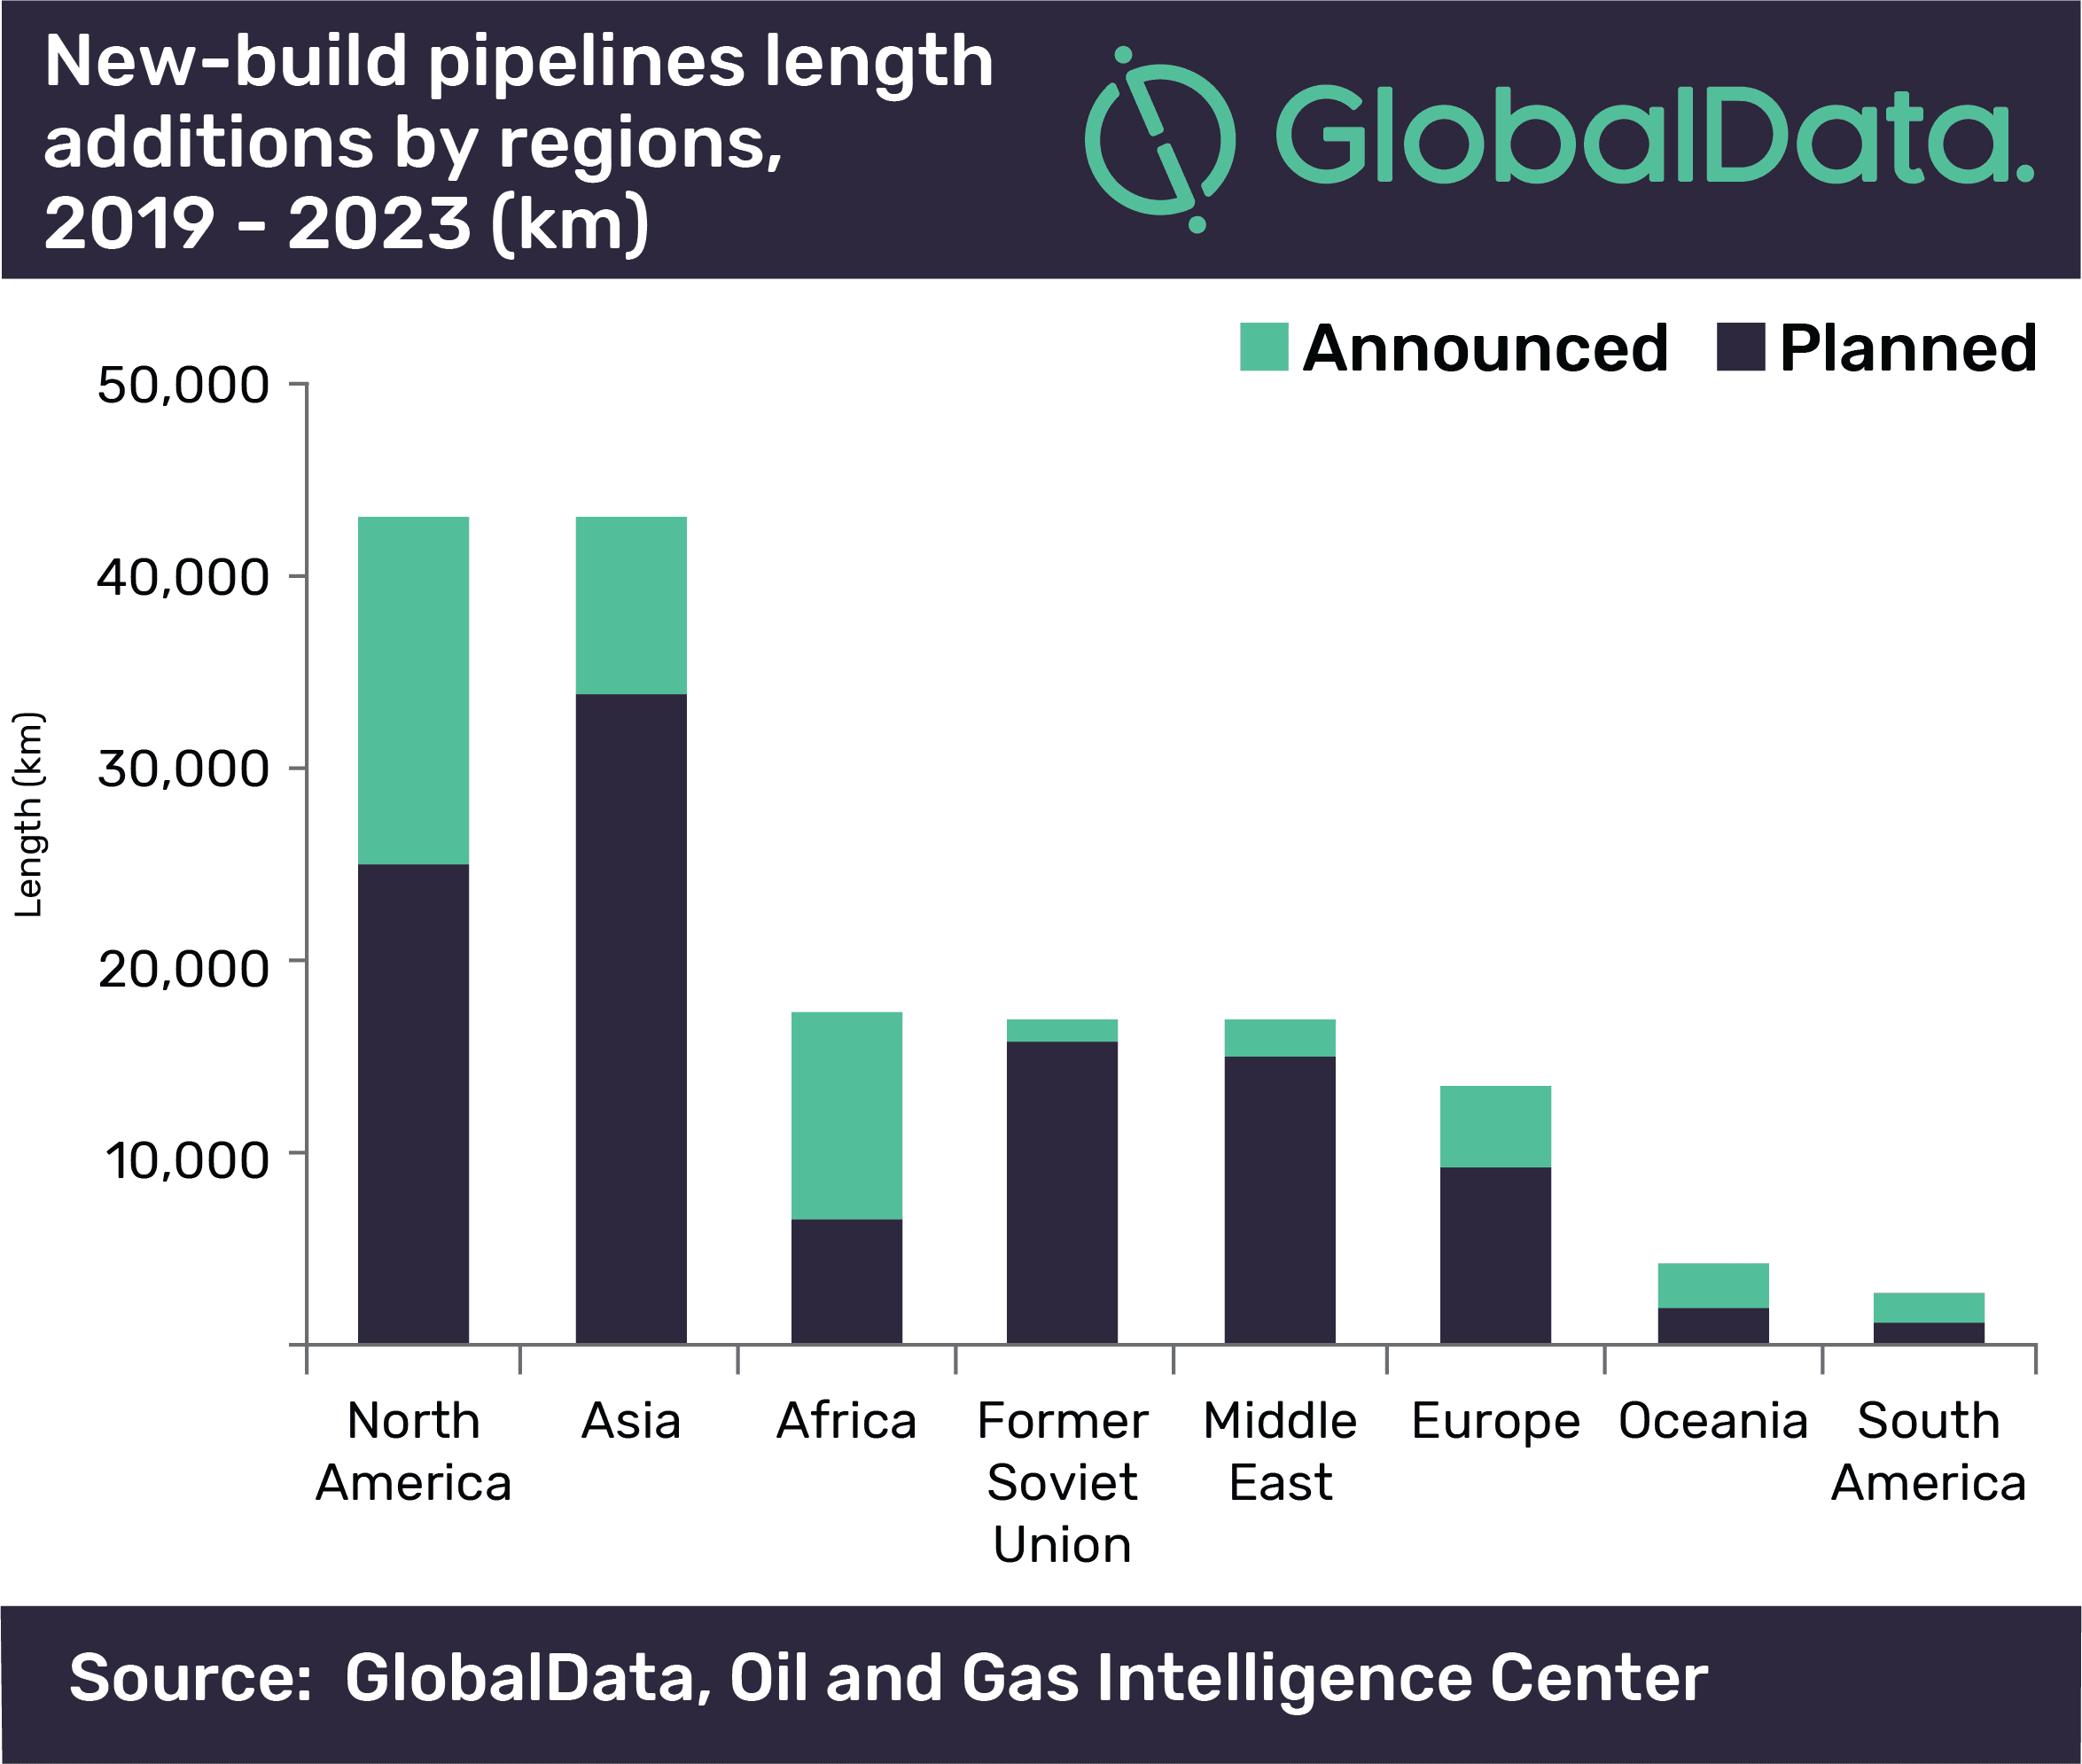 North America and Asia set to contribute 55% of global new-build trunk pipeline length additions by 2023